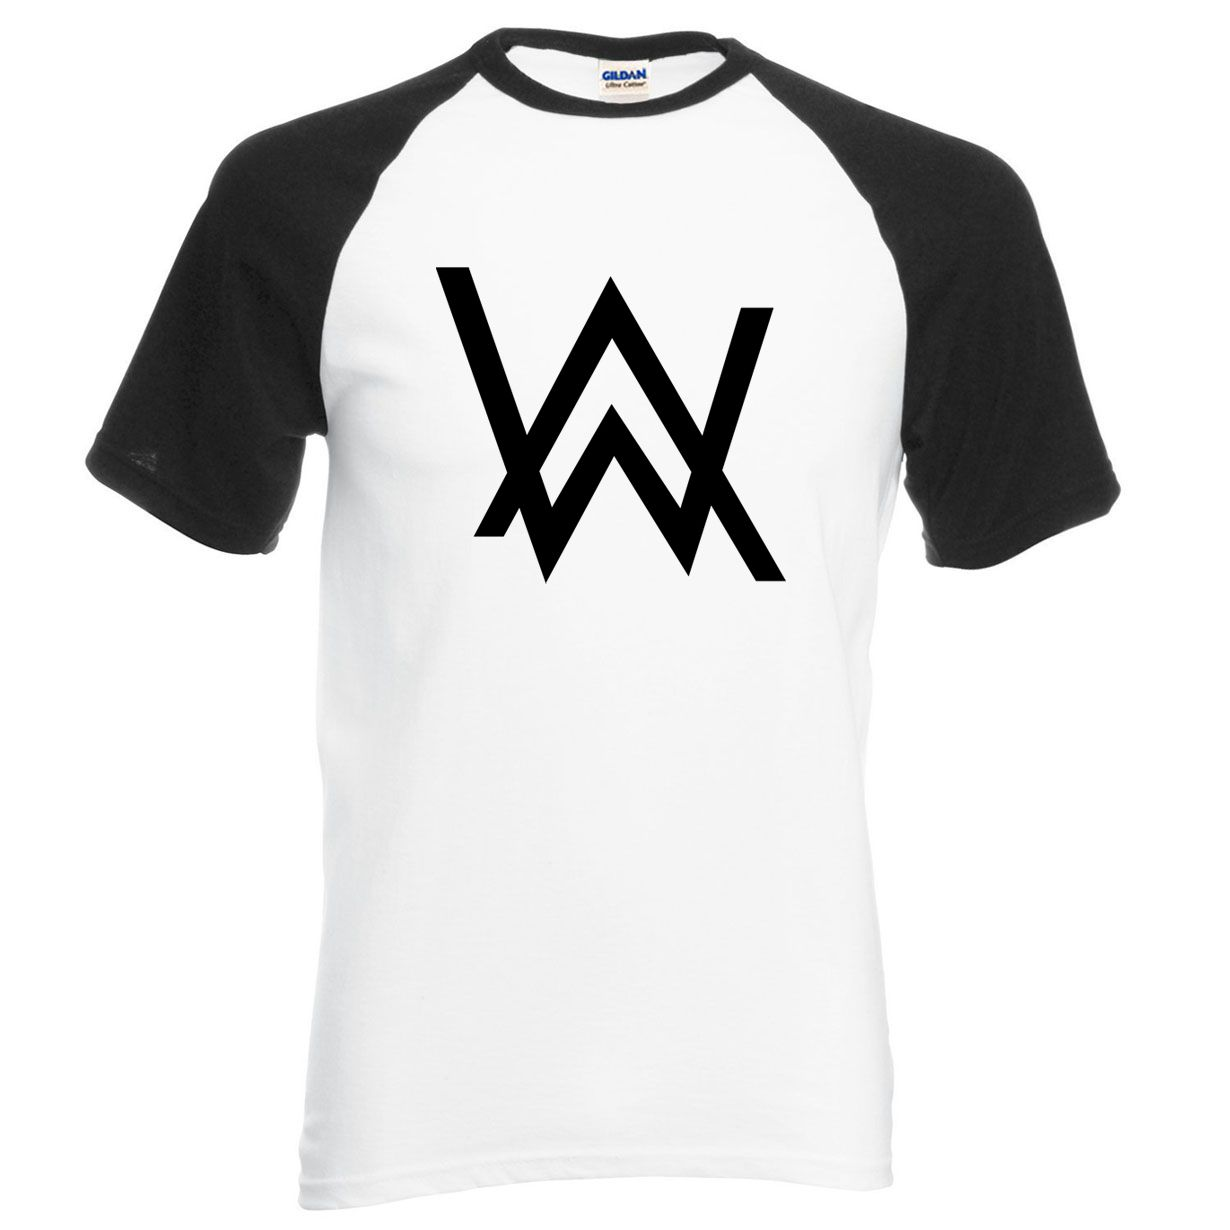 79acb4363 DJ Alan Walker Faded Raglan T-Shirt 2017 Summer 100% Cotton Men T Shirt